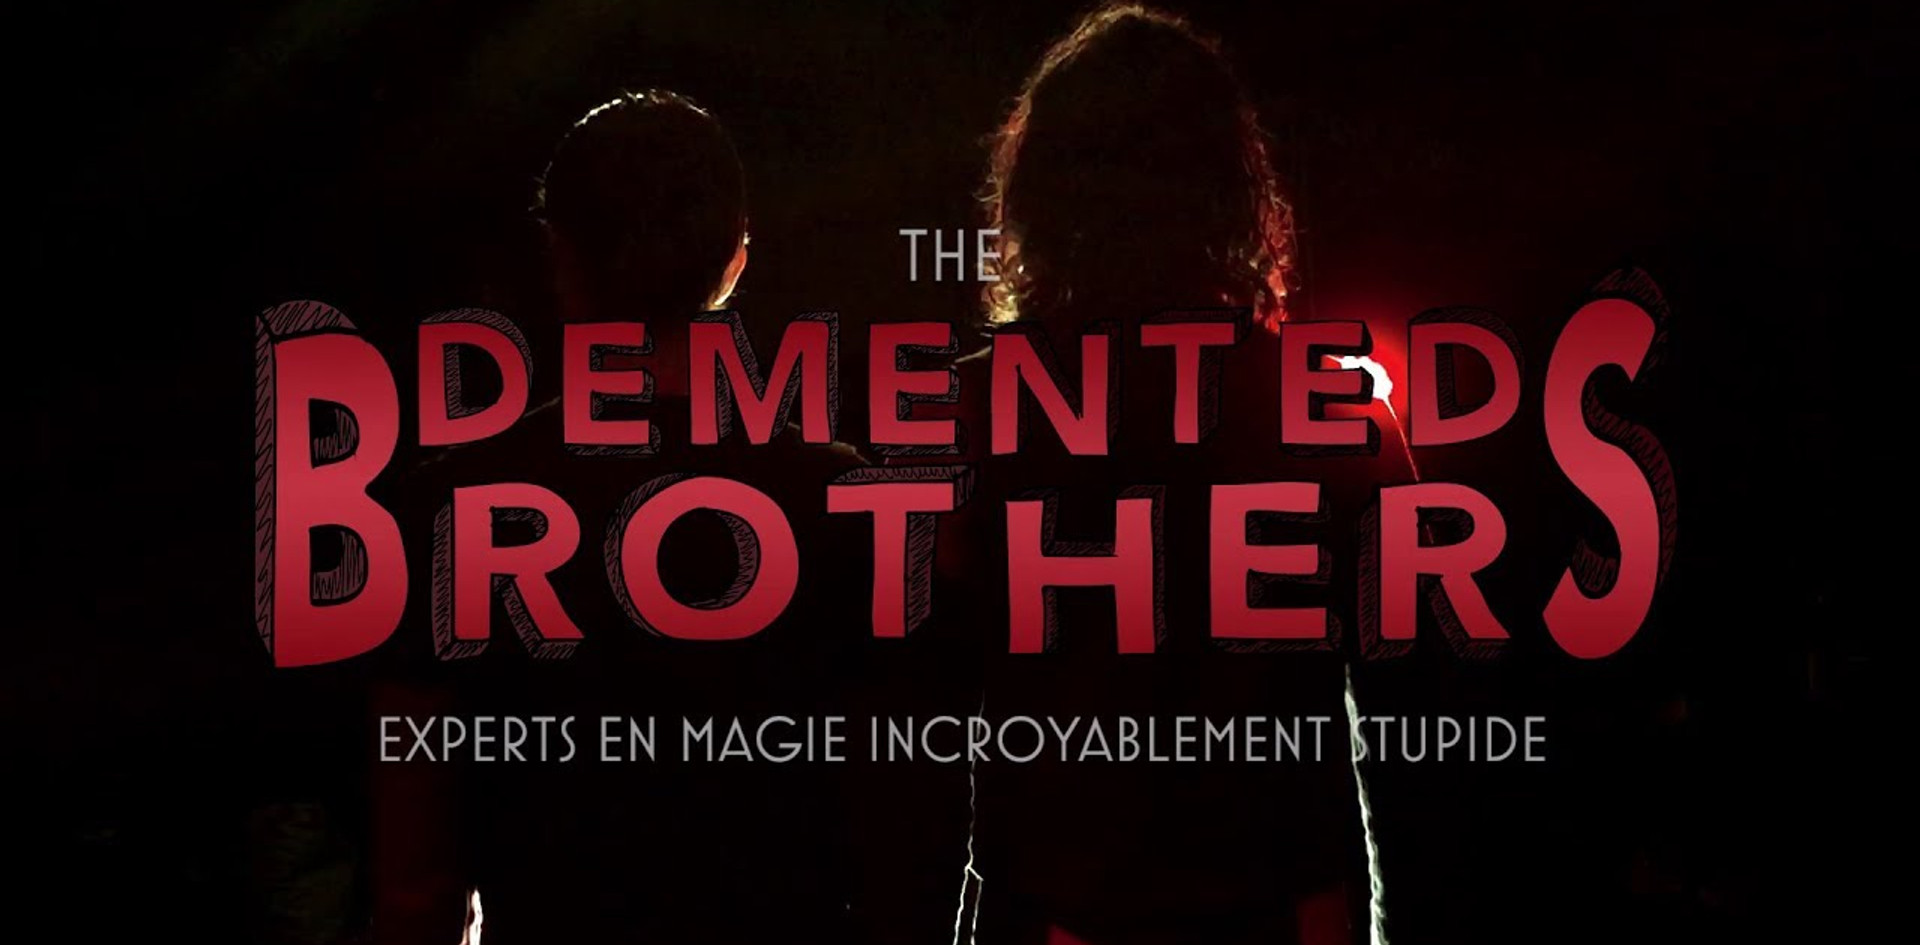 Demented Brothers